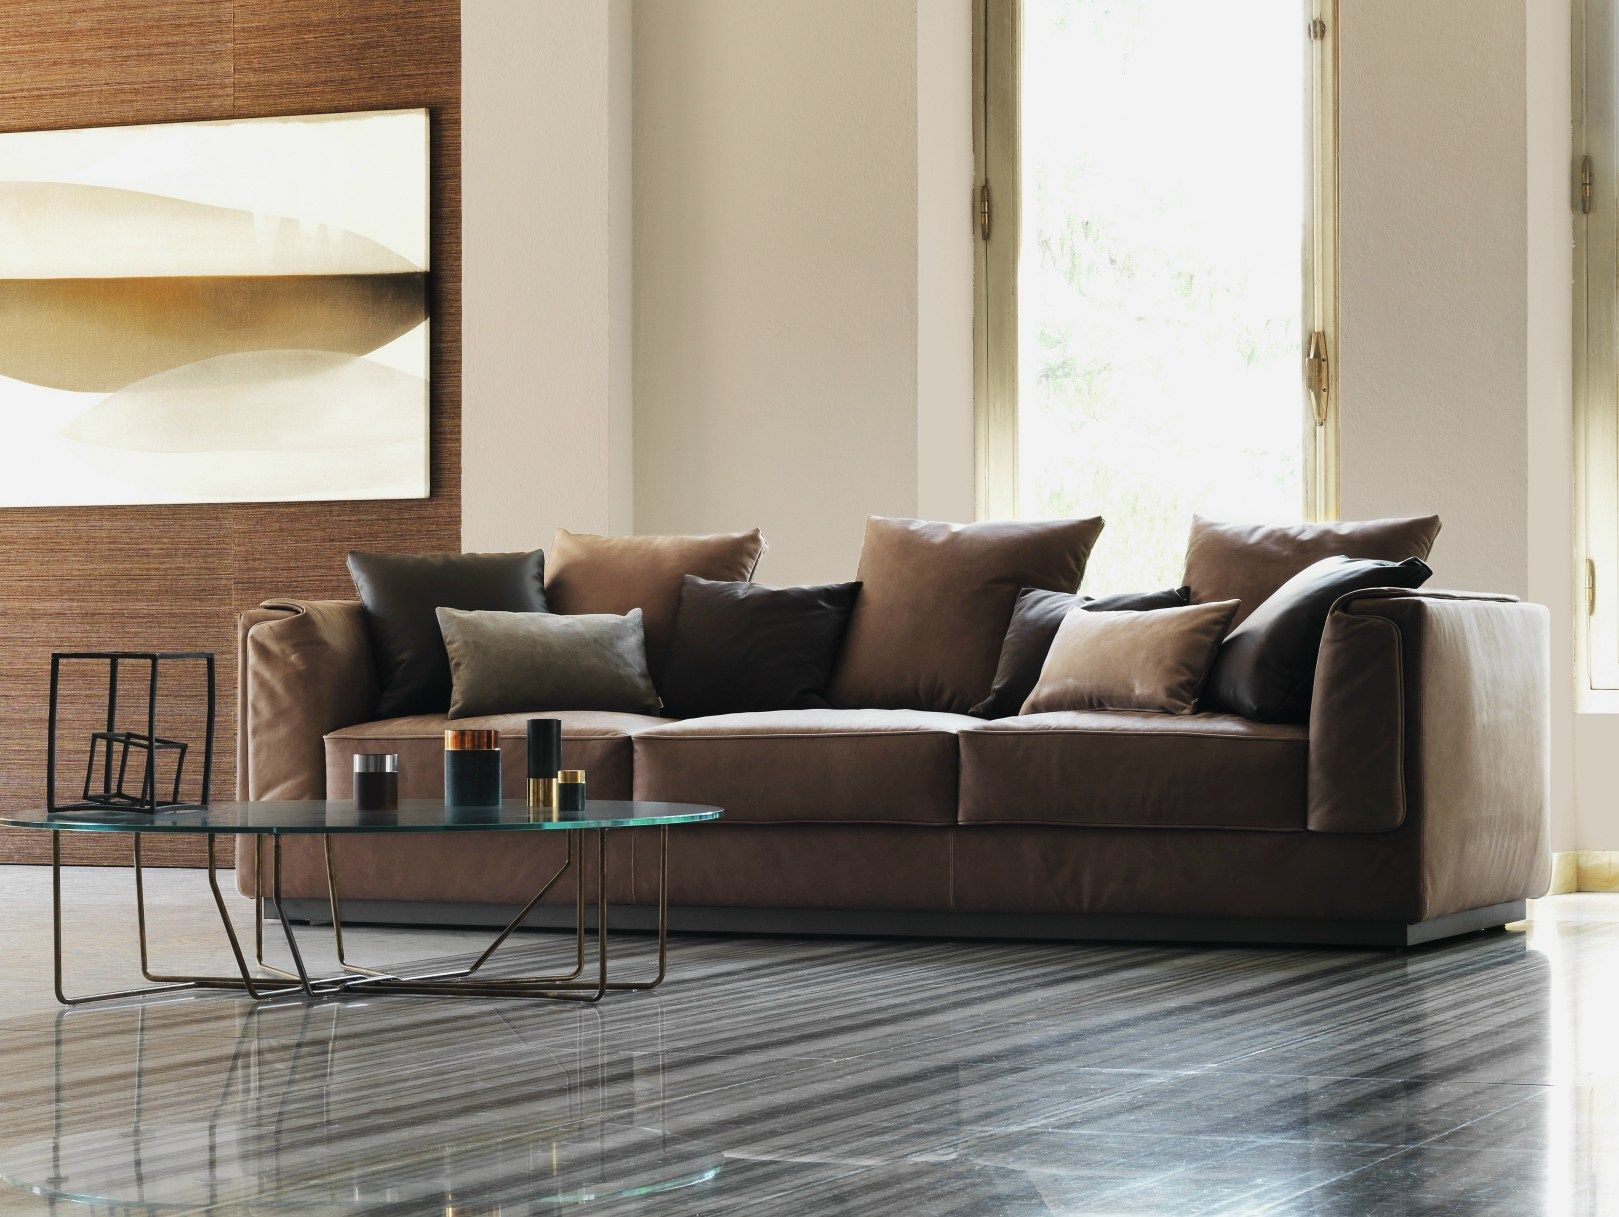 Design Couch 15 Modern Couches With Diverse And Versatile Designs